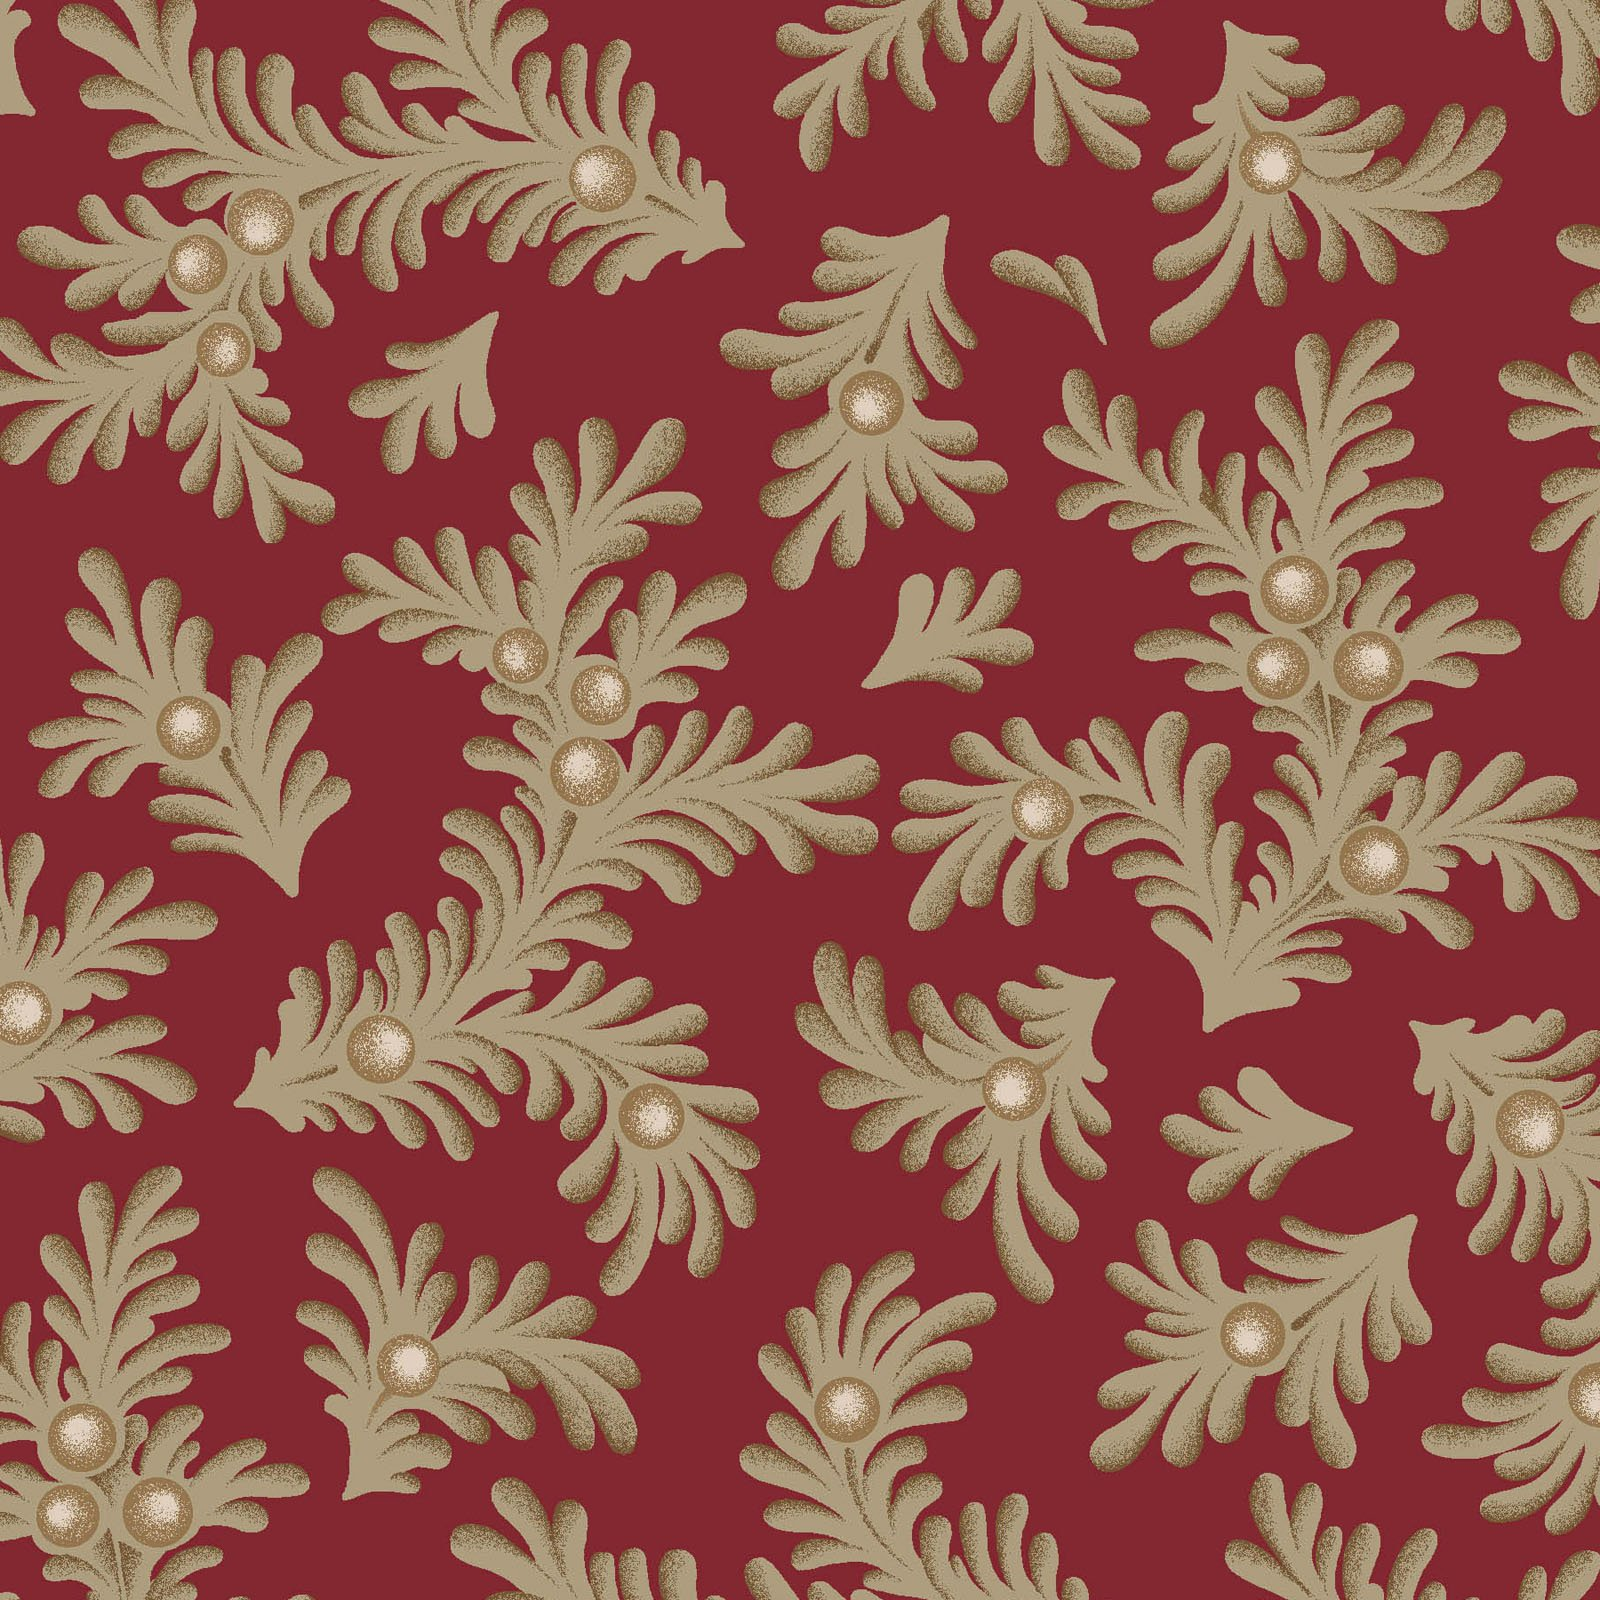 Ruby - Feathered Leaves - Red